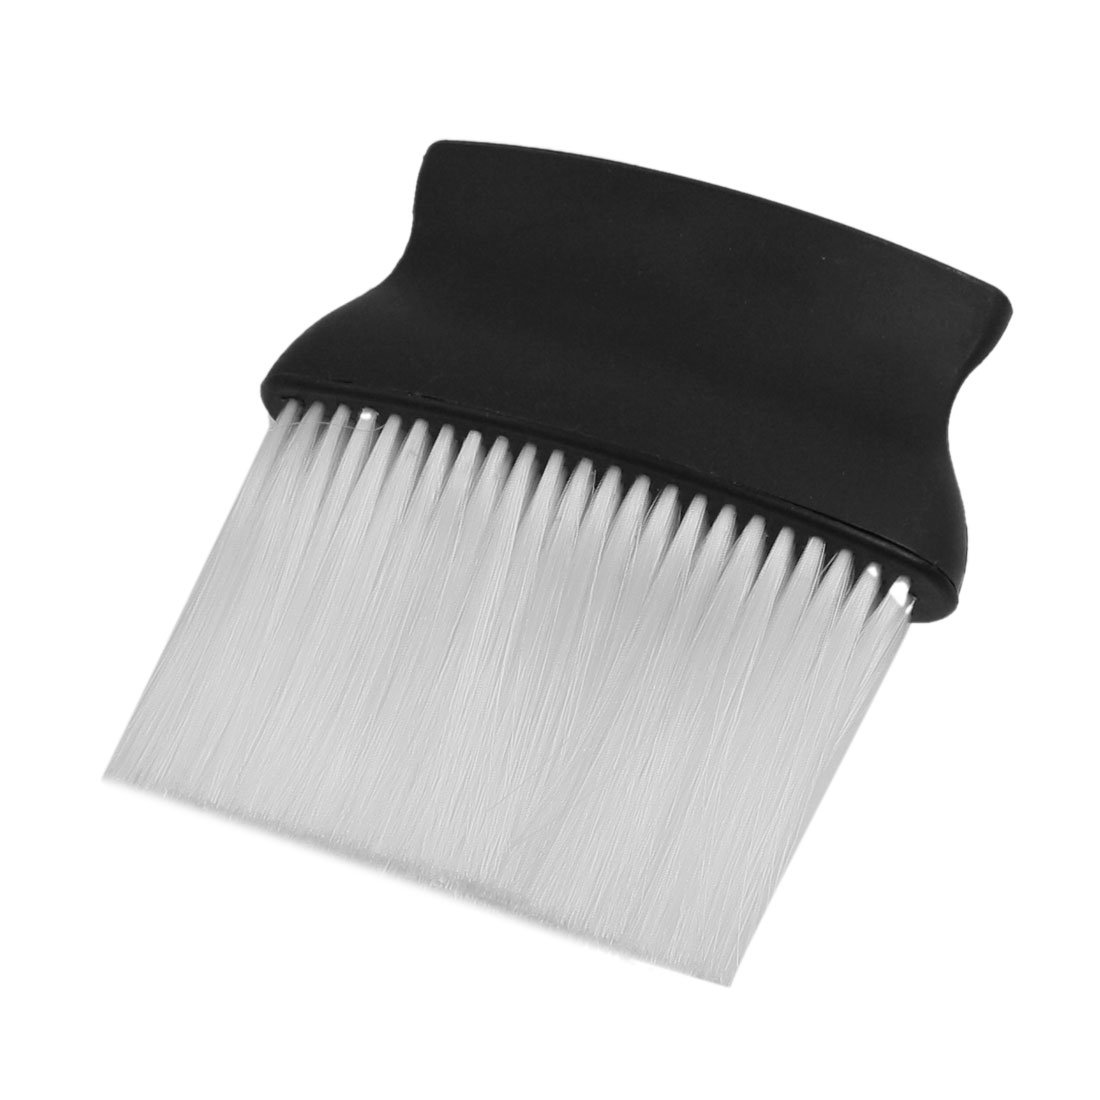 uxcell Plastic Barber Hair Salon Neck Duster Cleaning Brush 12.5 x 12.5 x 2.5cm Black White a12071800ux0416